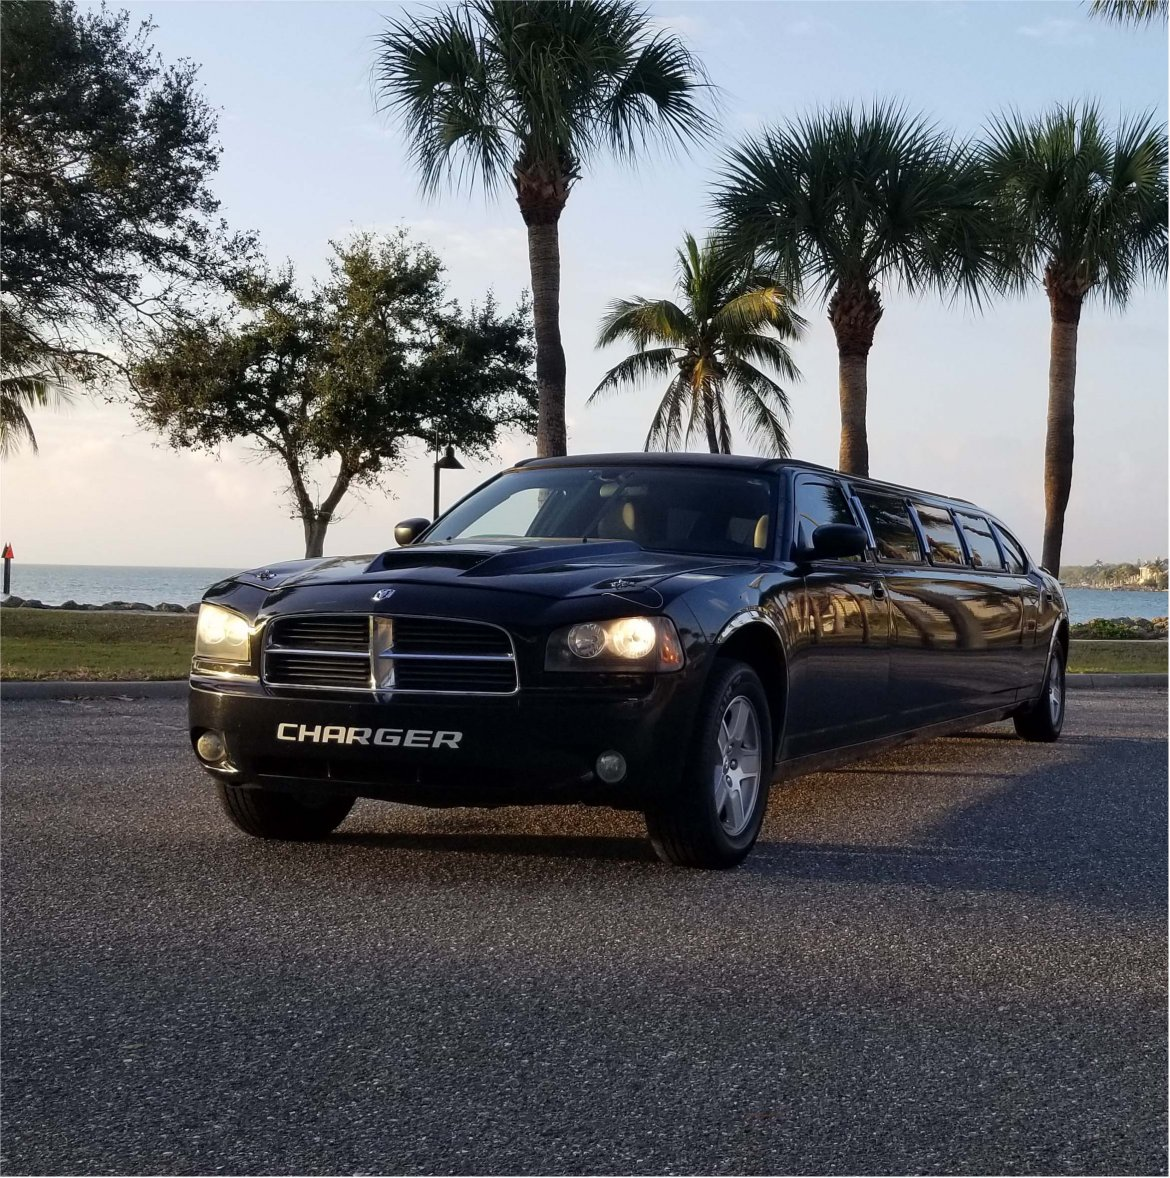 "Limousine for sale: 2006 Dodge Charger 180"" by Custom Builder for Richard Petty"